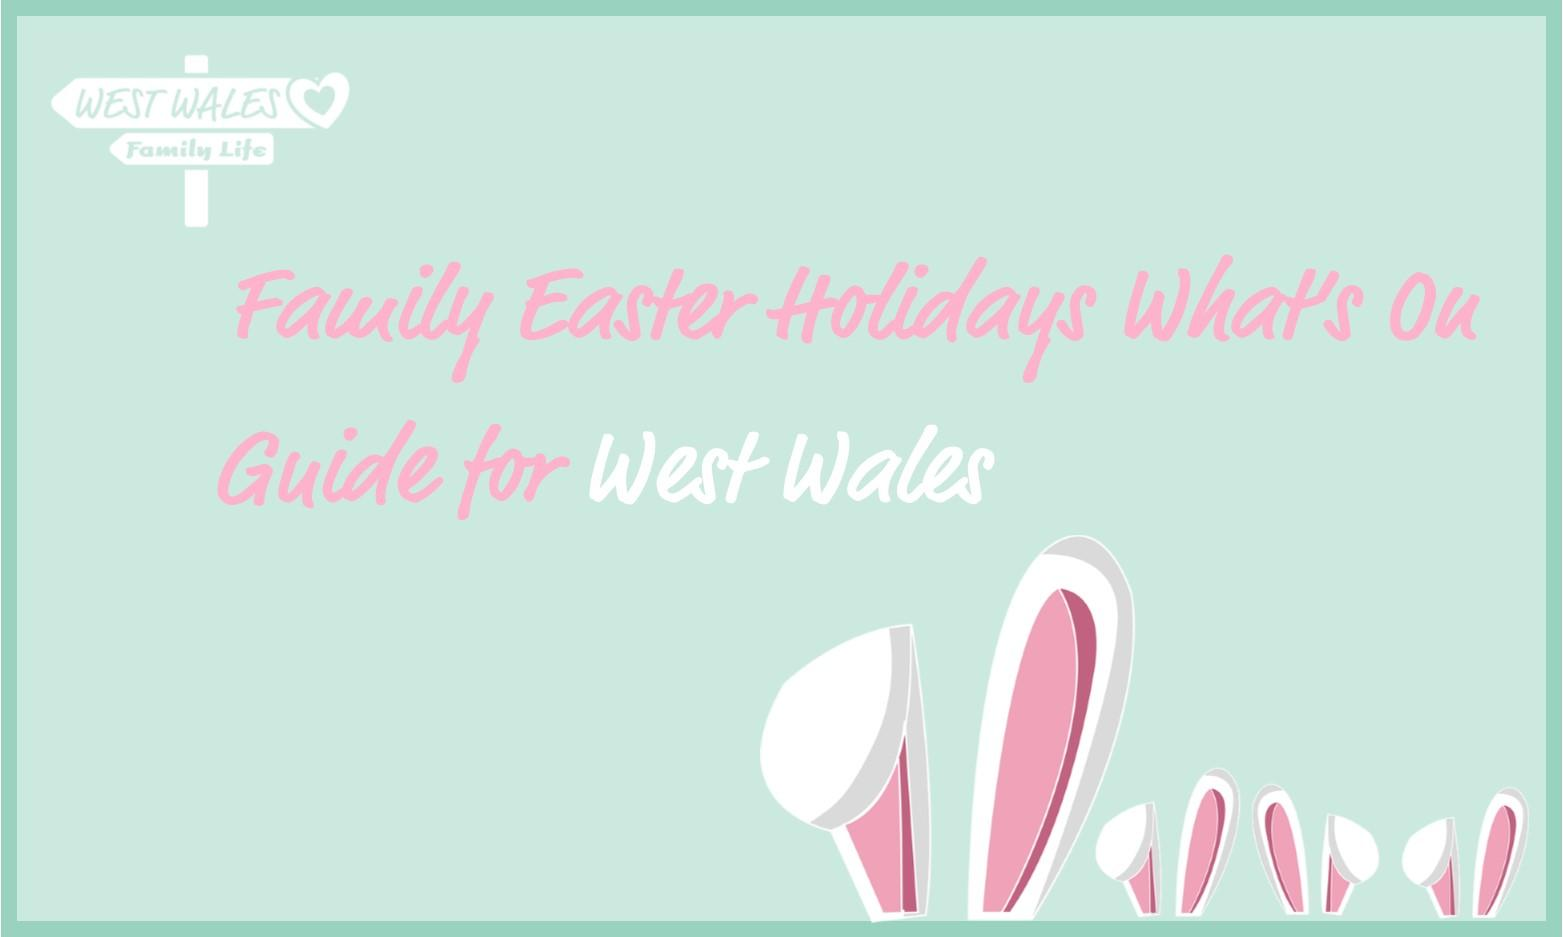 Family Easter Holidays What's On Guide for West Wales